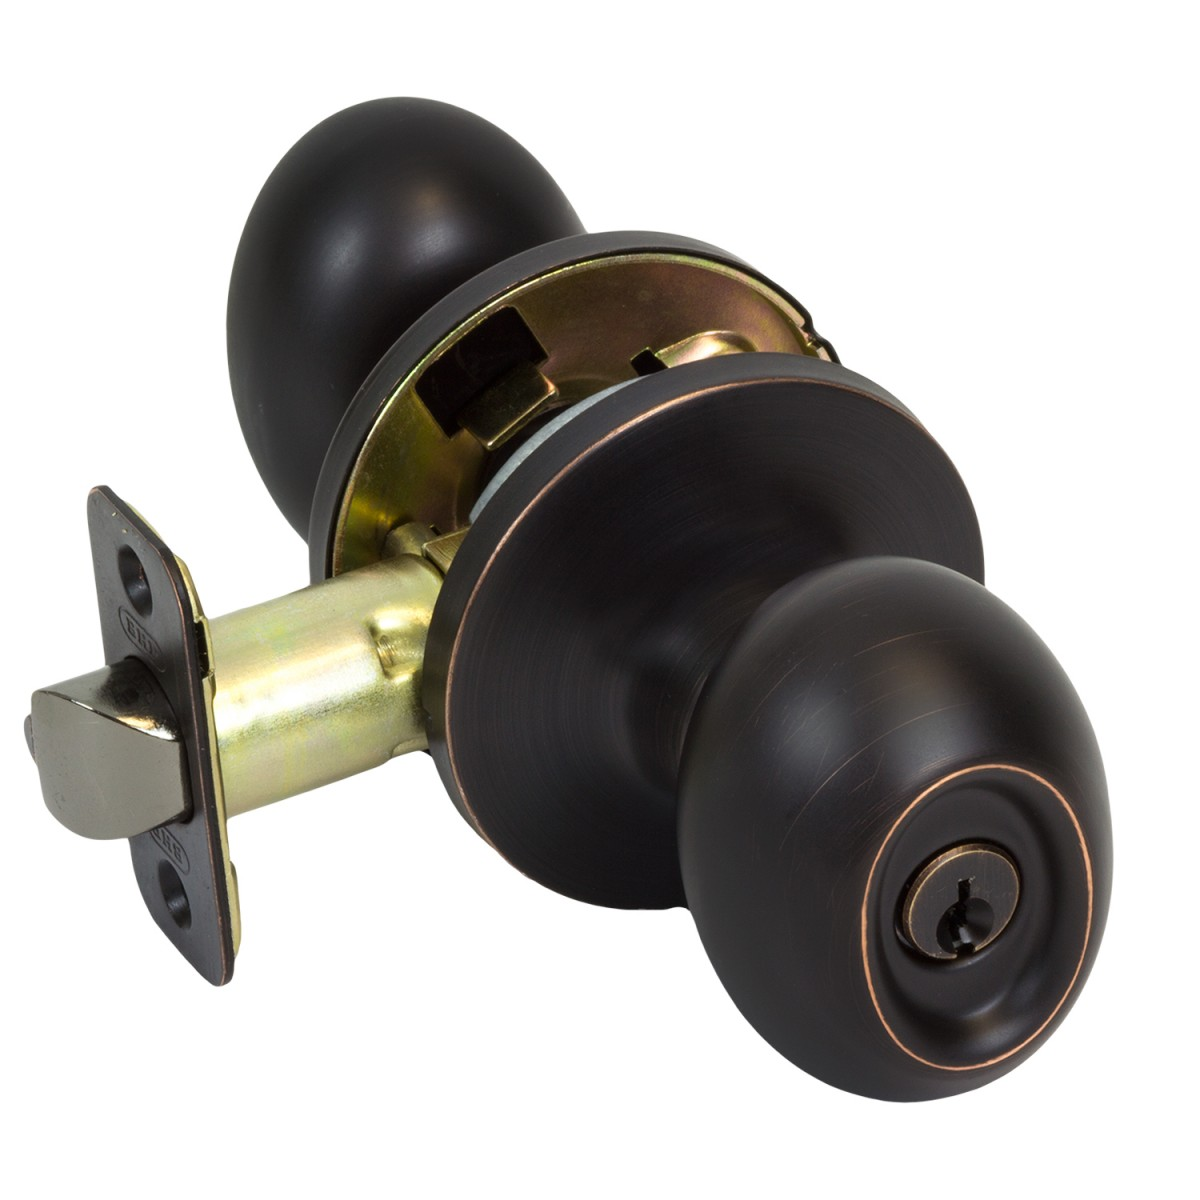 bhp door knobs photo - 11